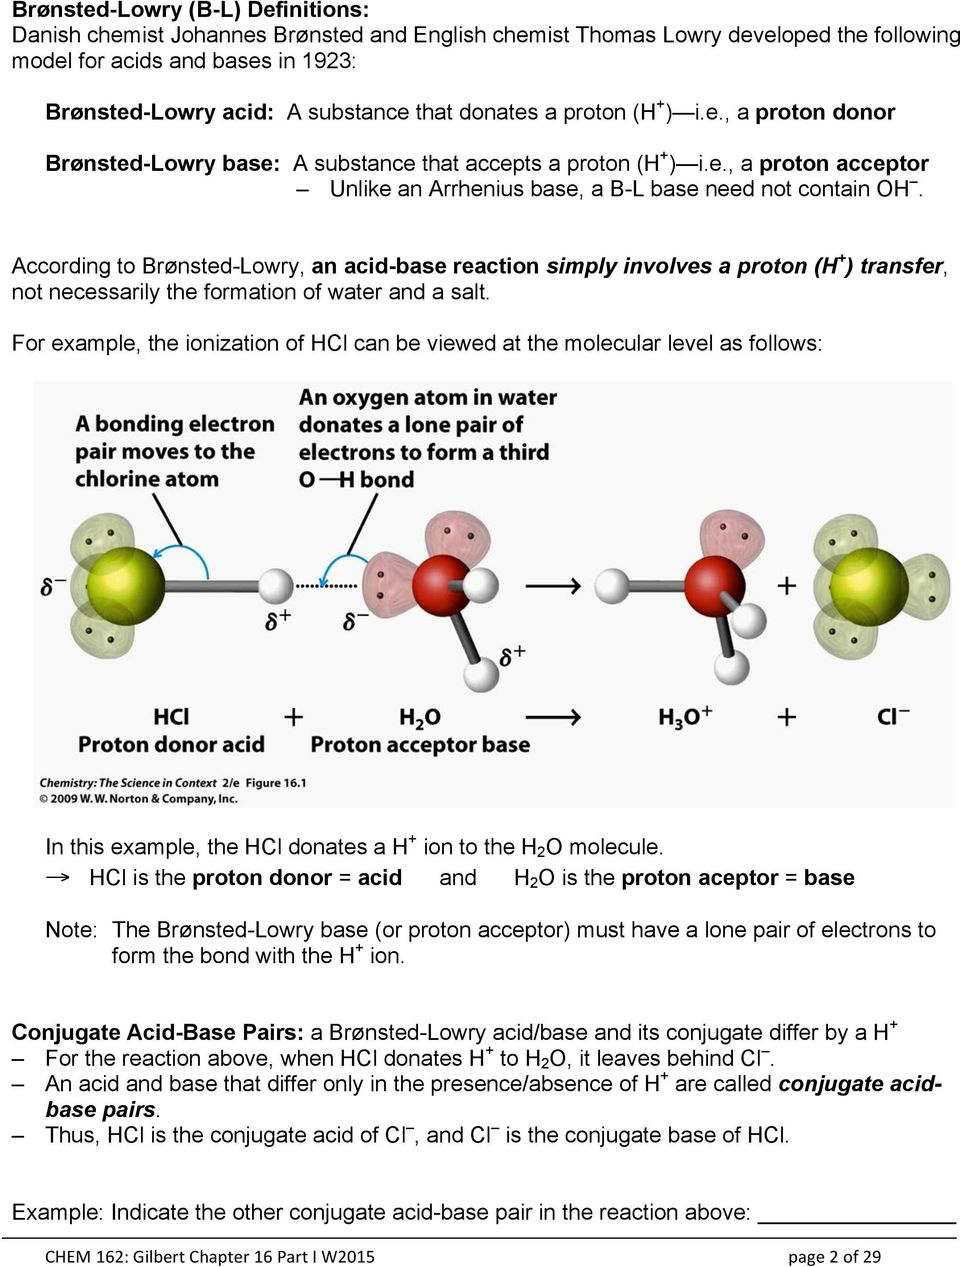 According to Brønsted-Lowry, an acid-base reaction simply involves a proton (H + ) transfer, not necessarily the formation of water and a salt.